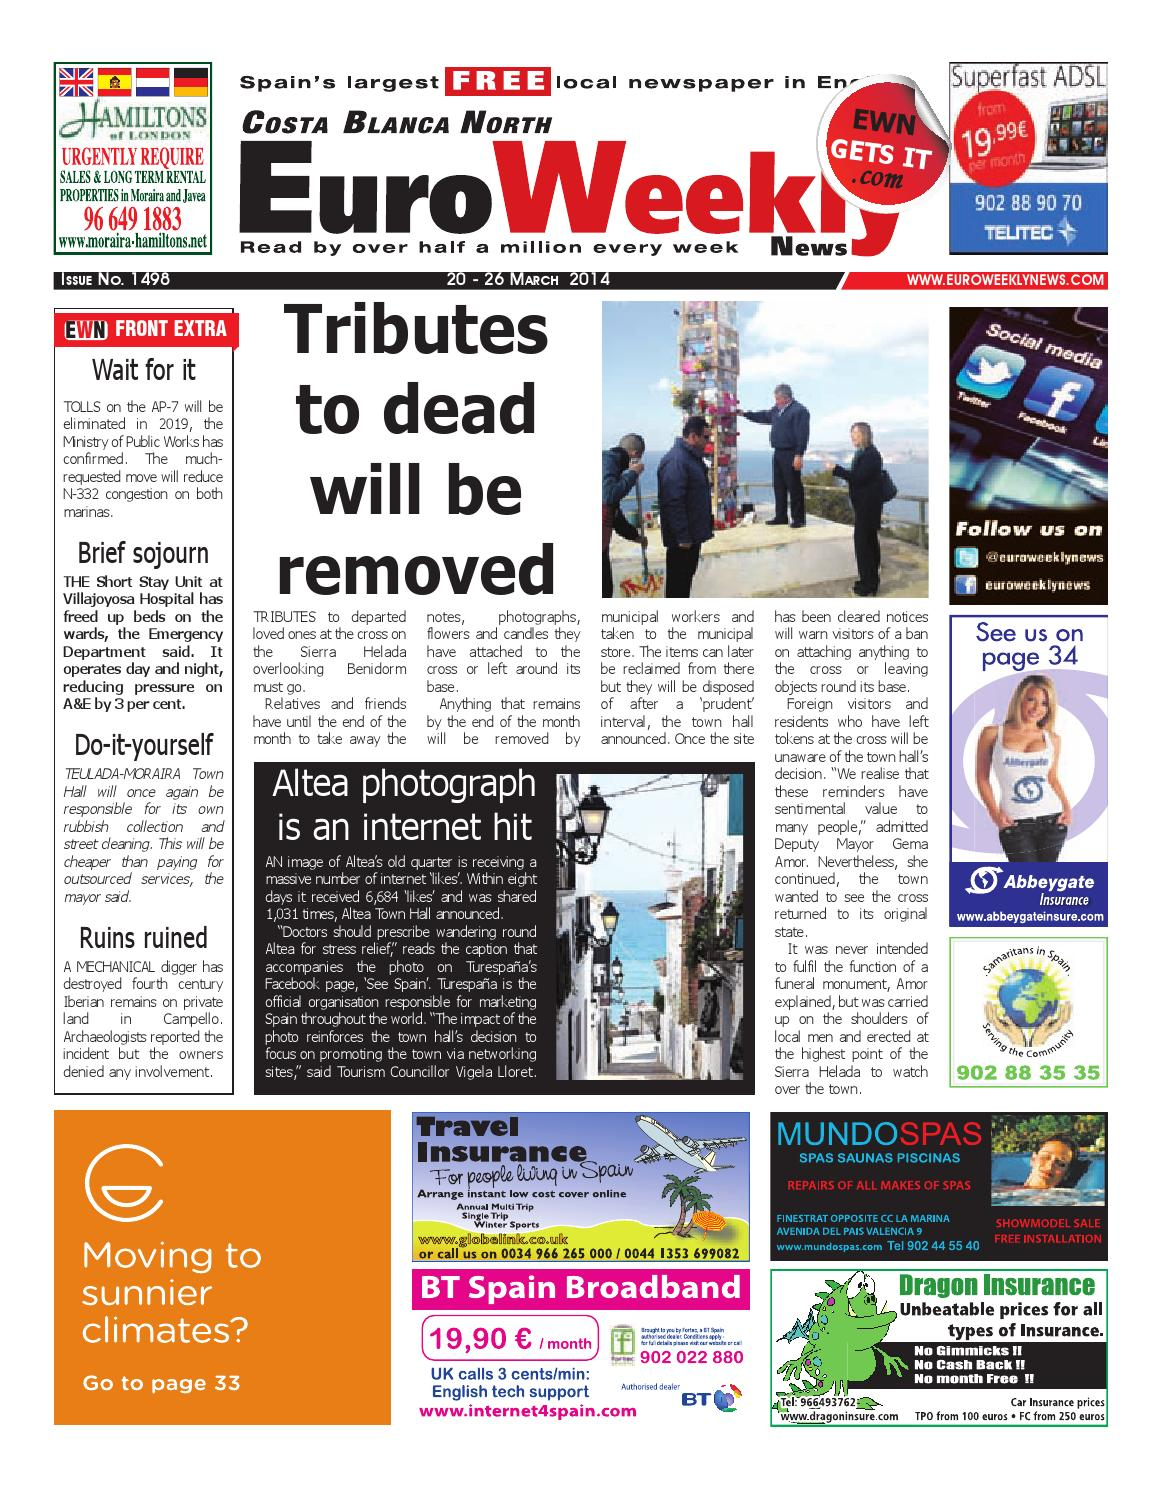 Euro Weekly News Costa Blanca North 20 26 March 2014 Issue  # Muebles Moedano